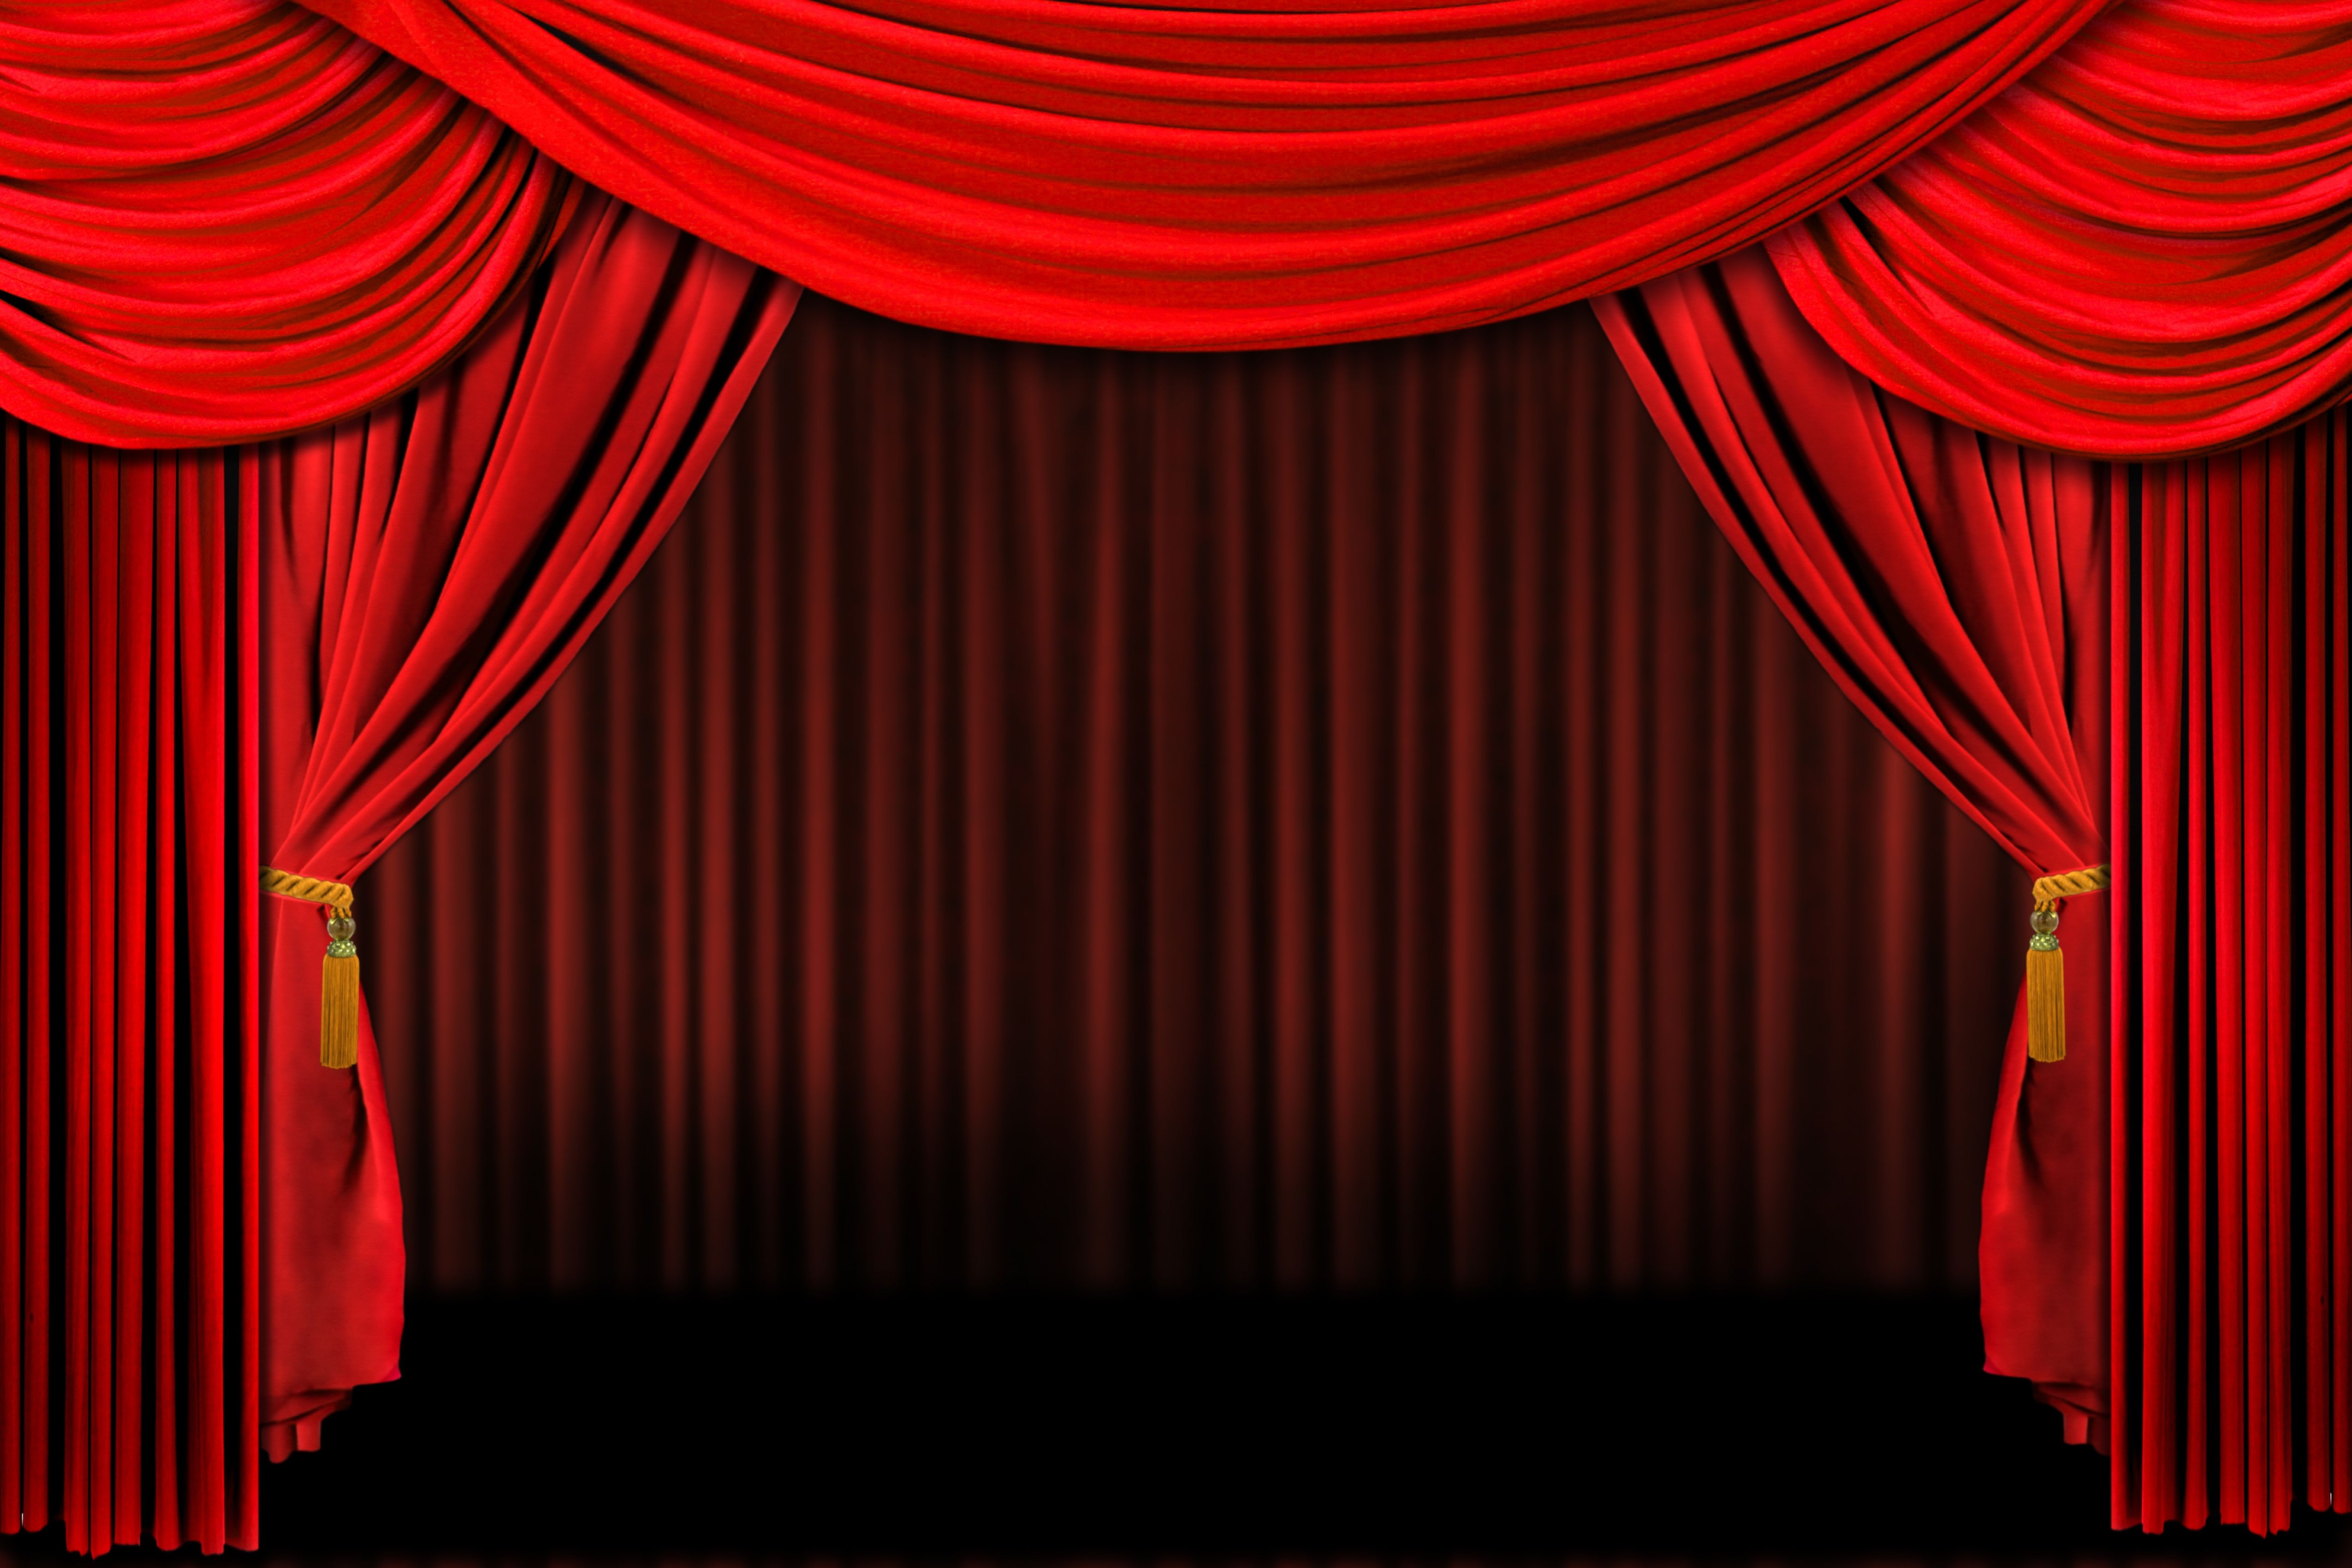 Award Background Red Curtains Curtain Backdrops Stage Curtains